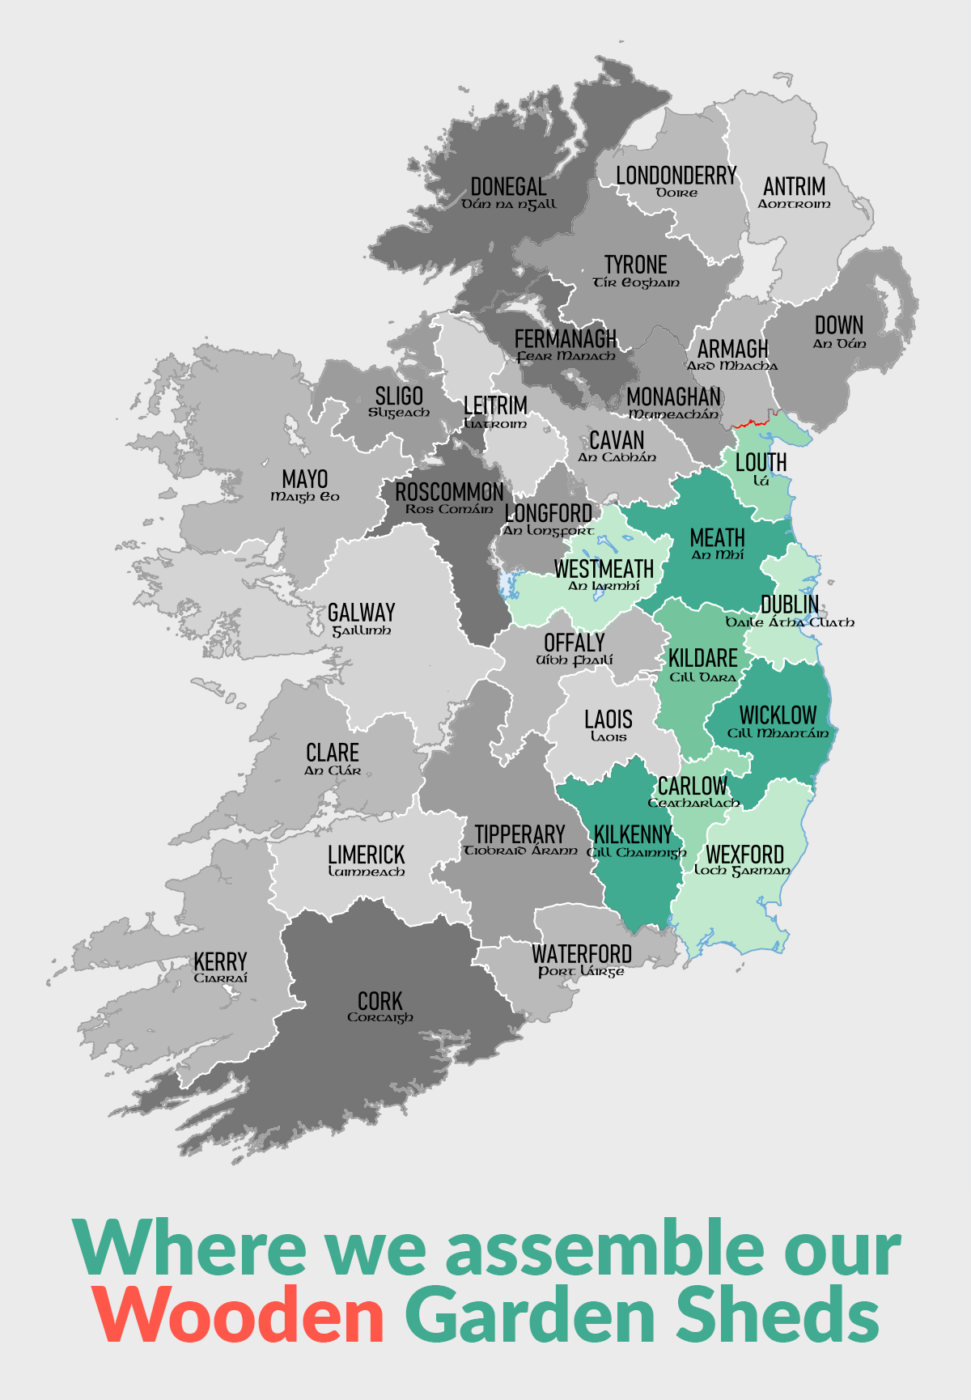 A map of Ireland that reads 'where we assemble our wooden Garden Sheds', with the counties dublin, meath, louth, westmeath, kildare, wicklow, carlow, kilkenny and wexford highlighted